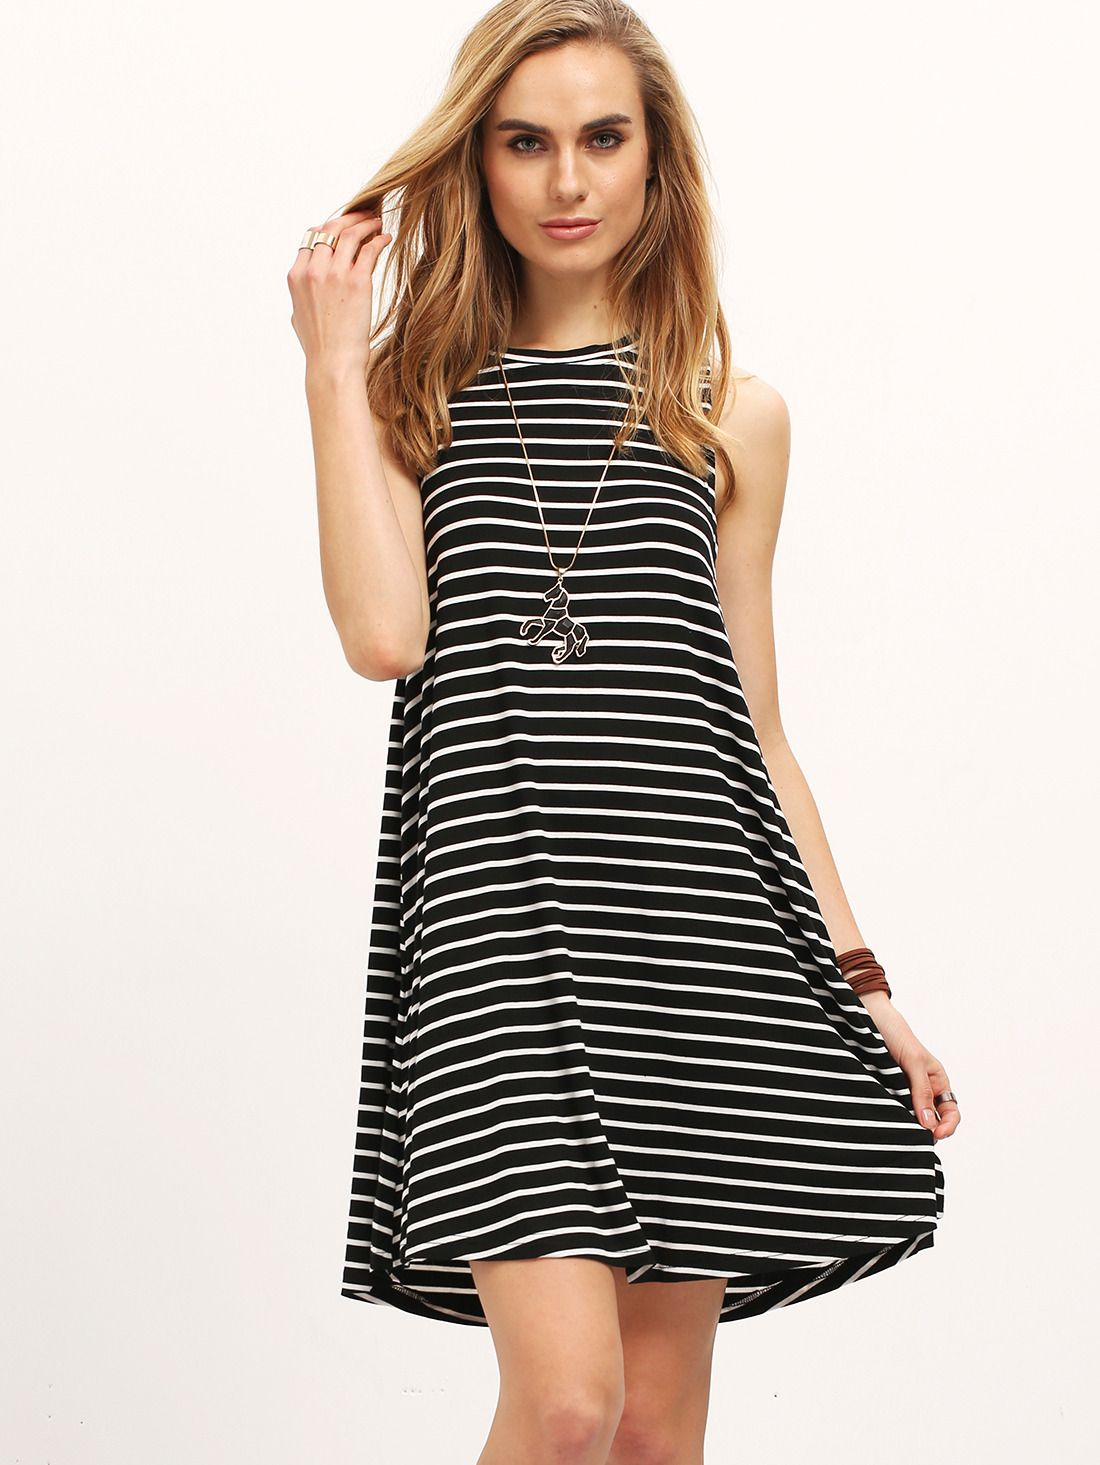 4edc1f1c0b416 Shop Black White Striped Sleeveless Dress online. SheIn offers Black White  Striped Sleeveless Dress & more to fit your fashionable needs.